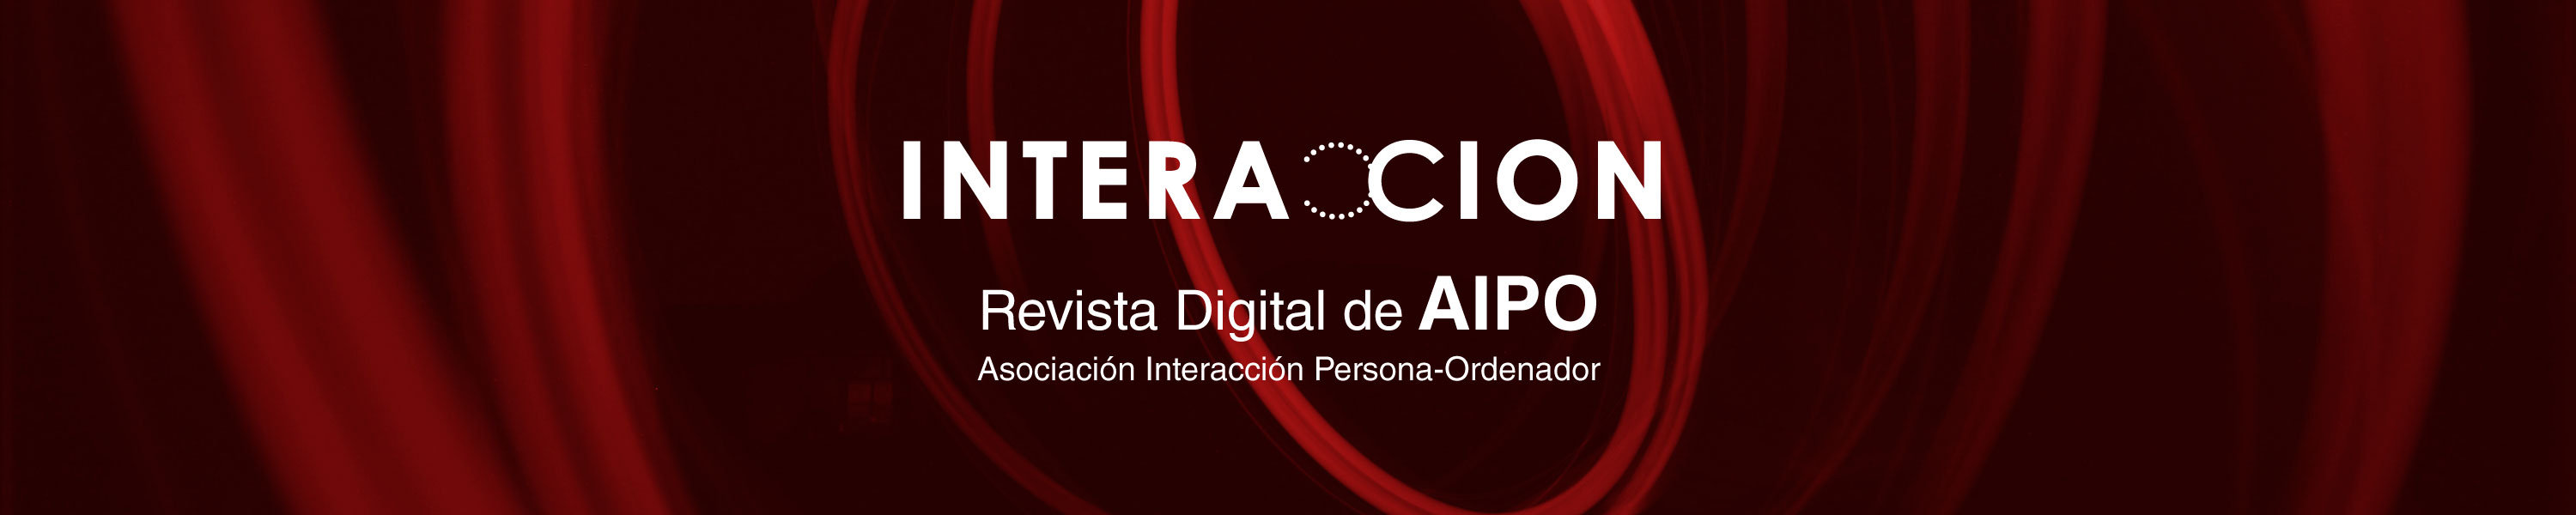 Logotipo revista Interacción